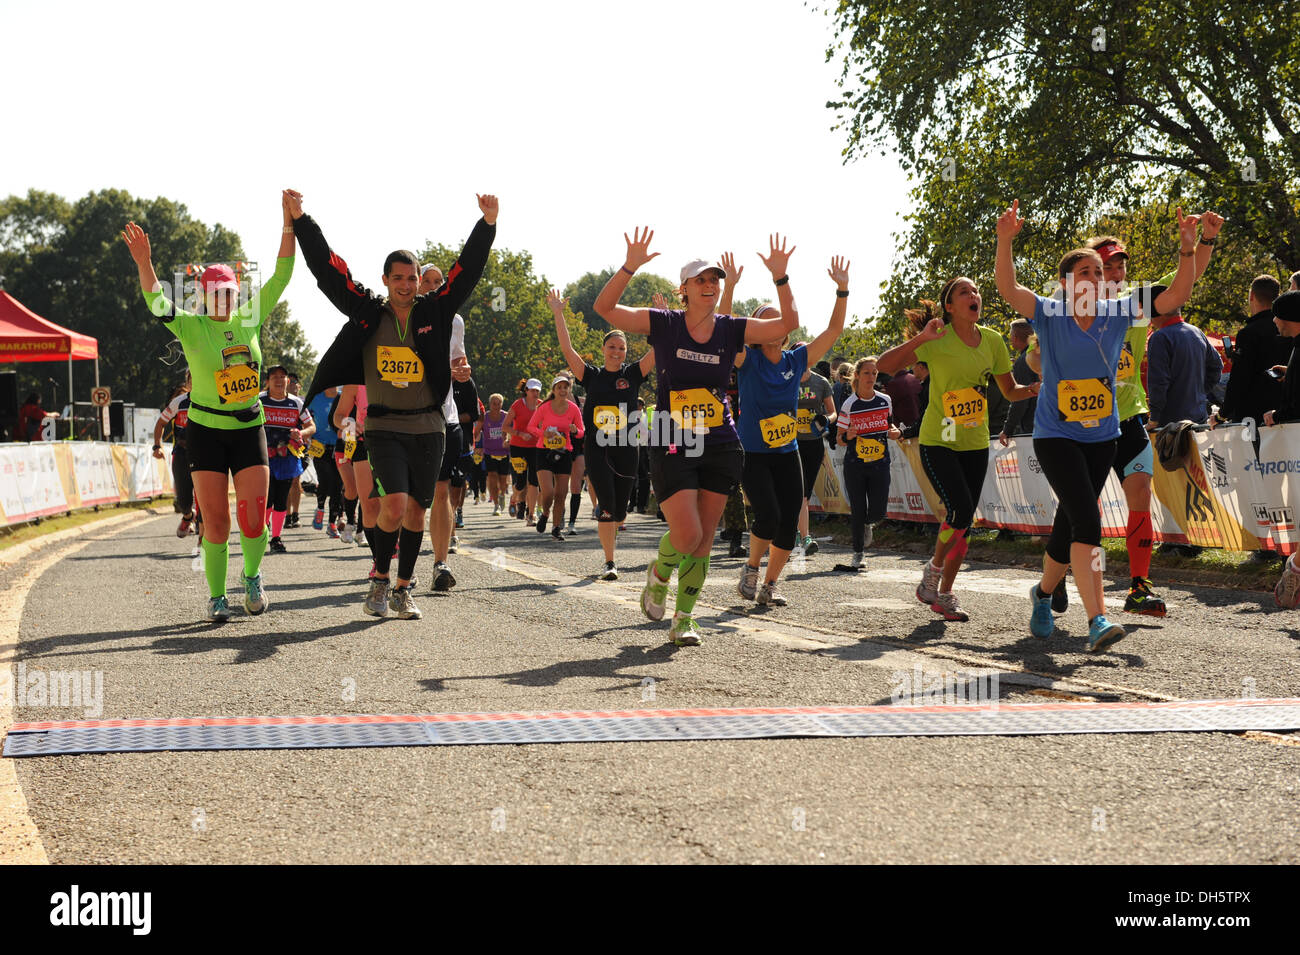 Runners celebrate as they cross the finish line at the end of the 38th Annual Marine Corps Marathon, Washington, D.C., Oct. 27, - Stock Image